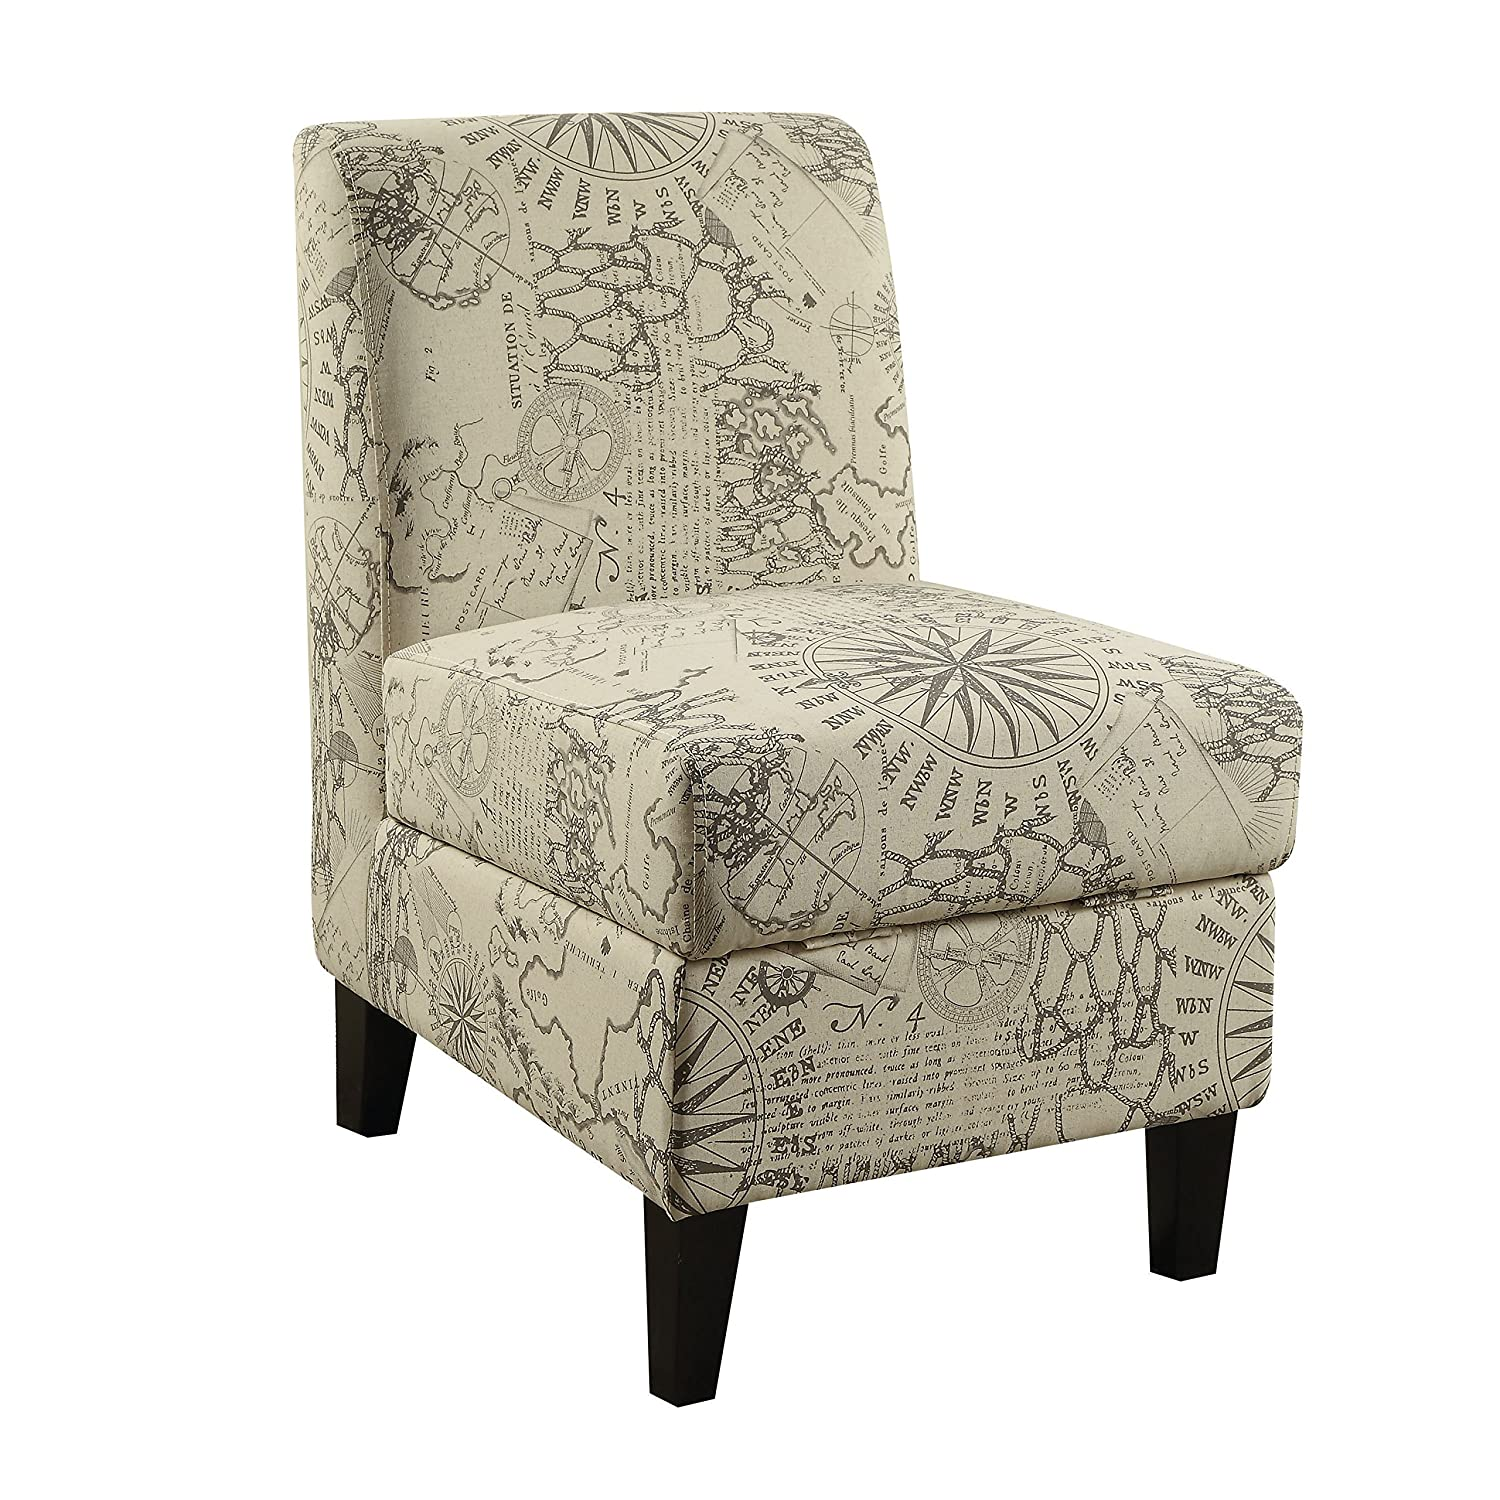 Peachy Amazon Com Acme Furniture 59617 Ollano Ii Map Accent Chair Gmtry Best Dining Table And Chair Ideas Images Gmtryco